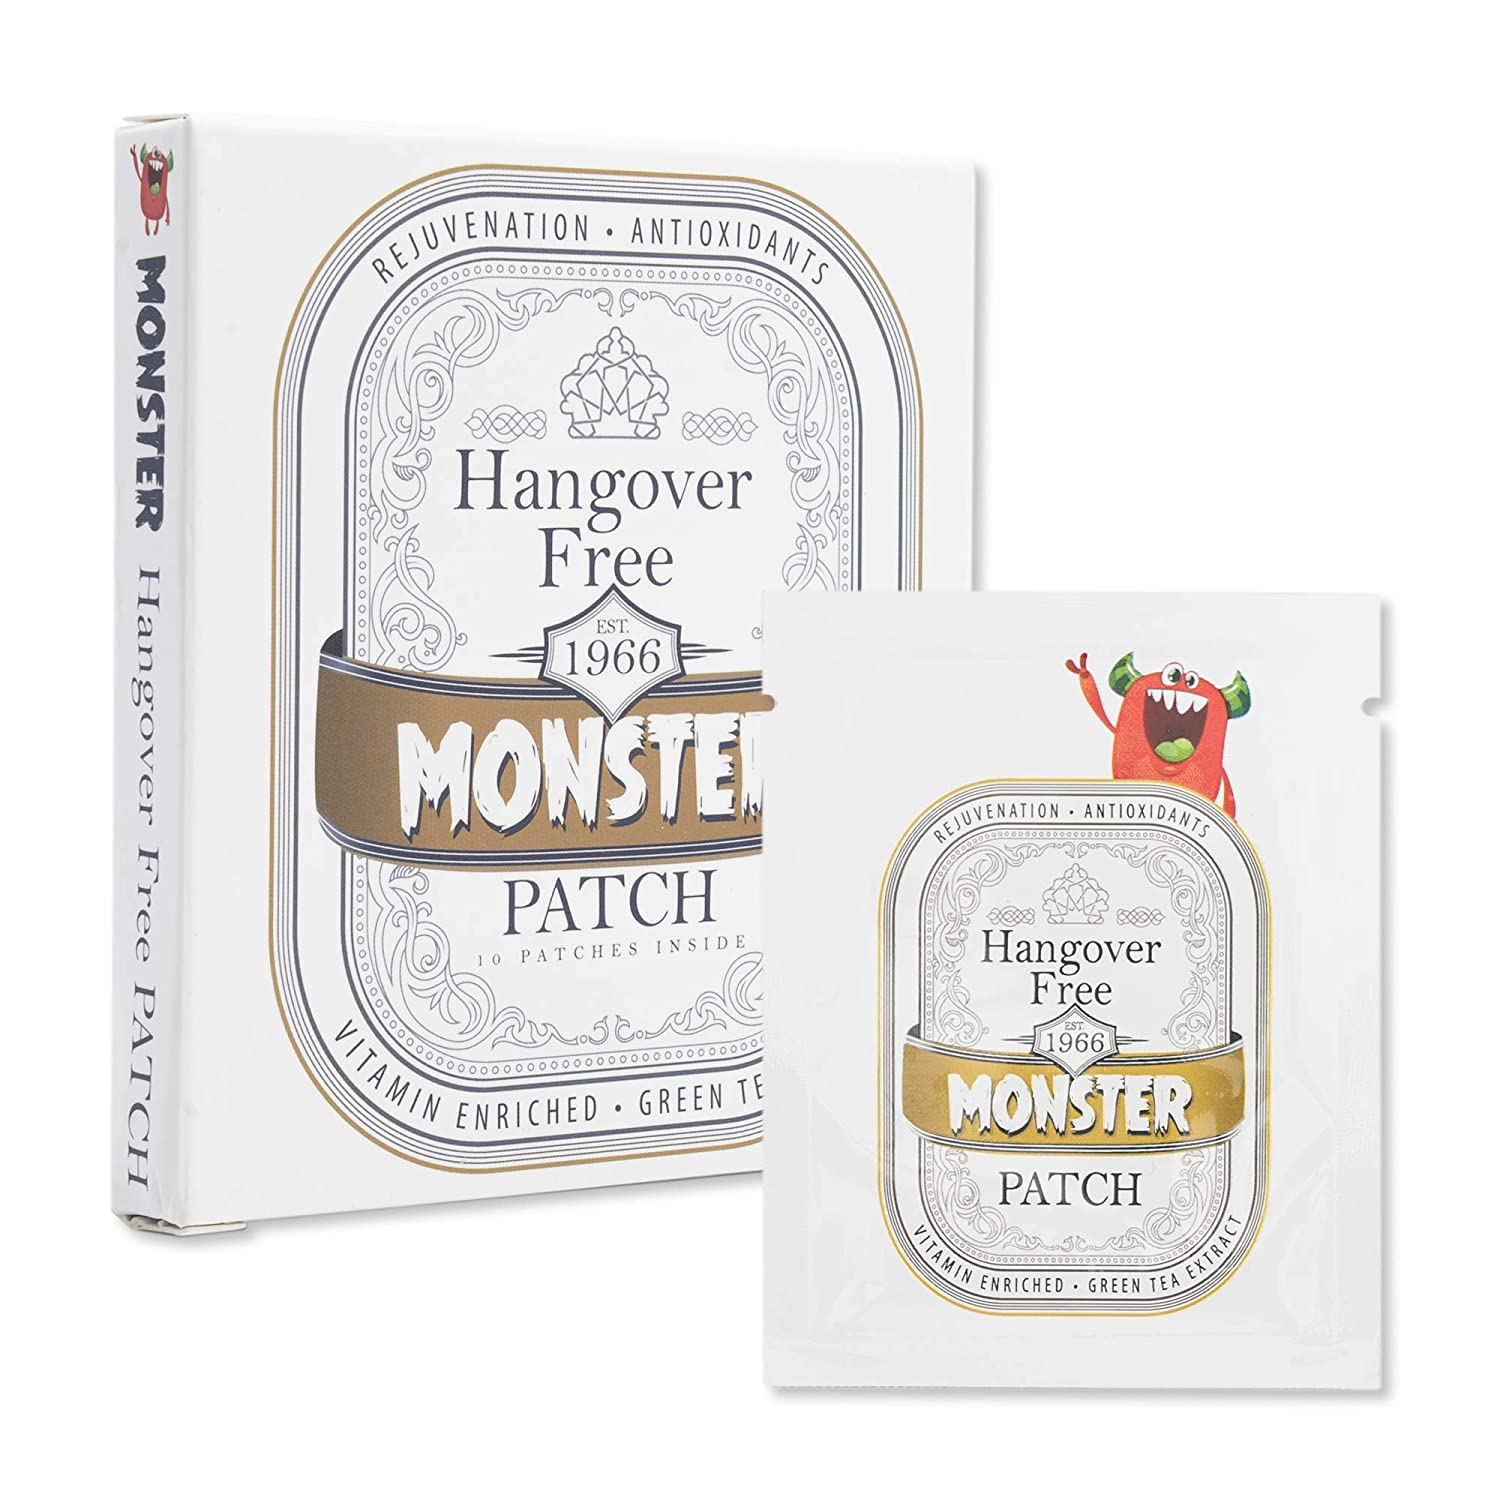 Hangover Patch (10 per Box). Vitamin enriched to aid in Alcohol Recovery for The Morning After. Monster Hangover Defense.